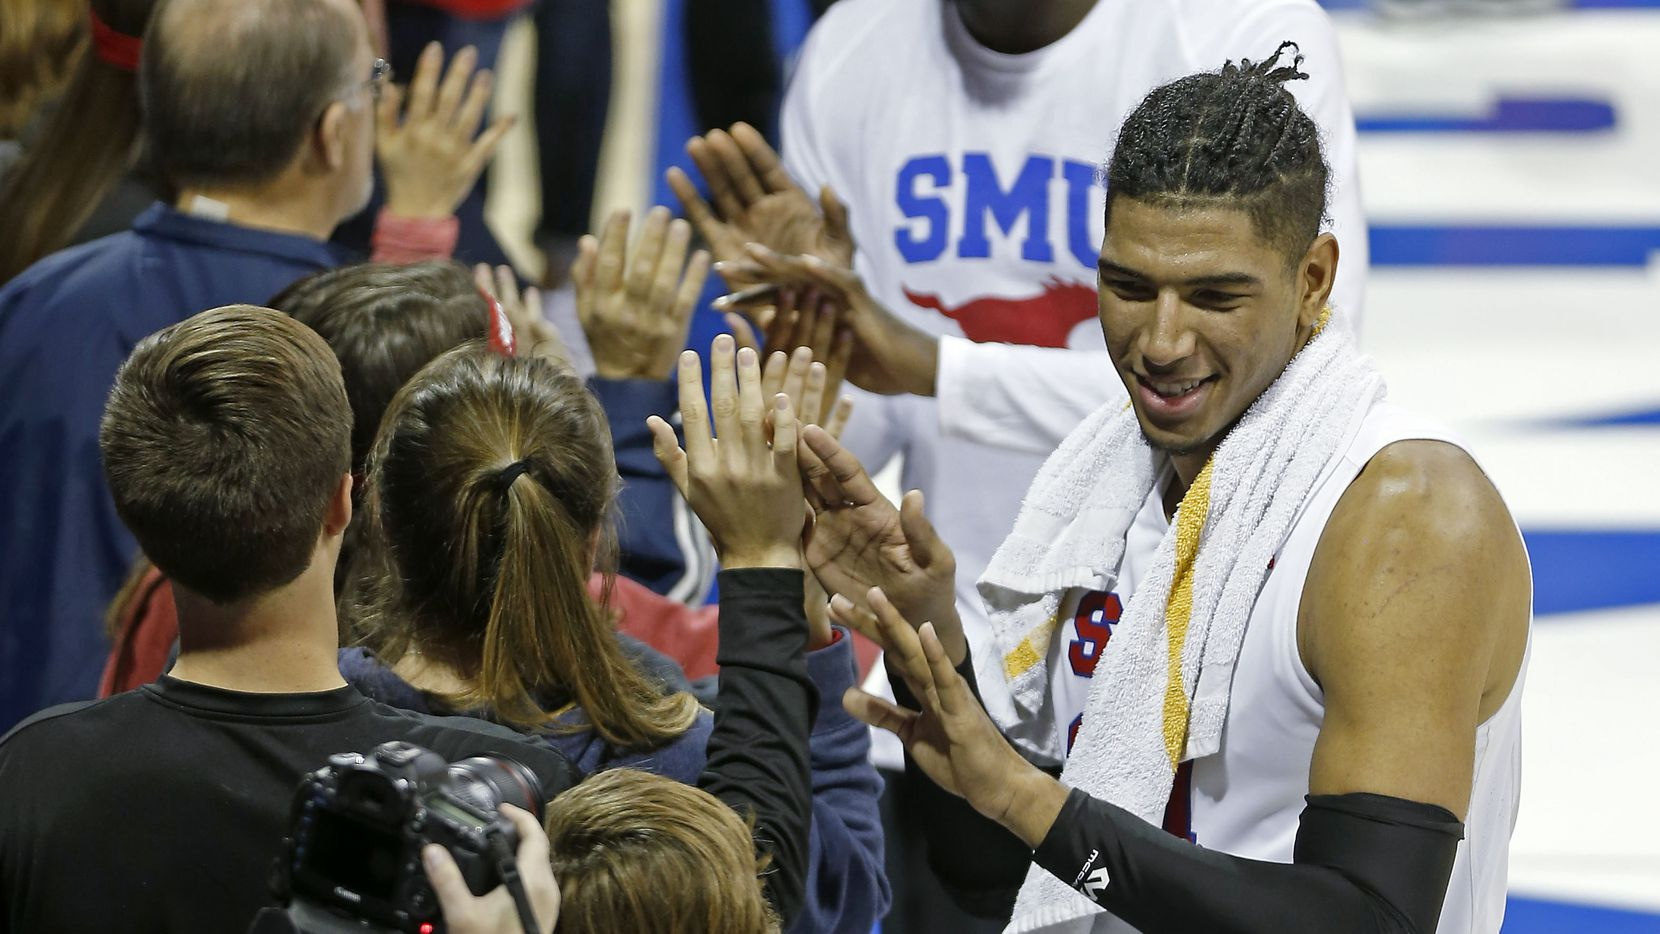 SMU forward Everett Ray (24) celebrates a 72-37 win over Arkansas-Pine Bluff with fans at Moody Coliseum in Dallas, Saturday, Nov. 18, 2017.